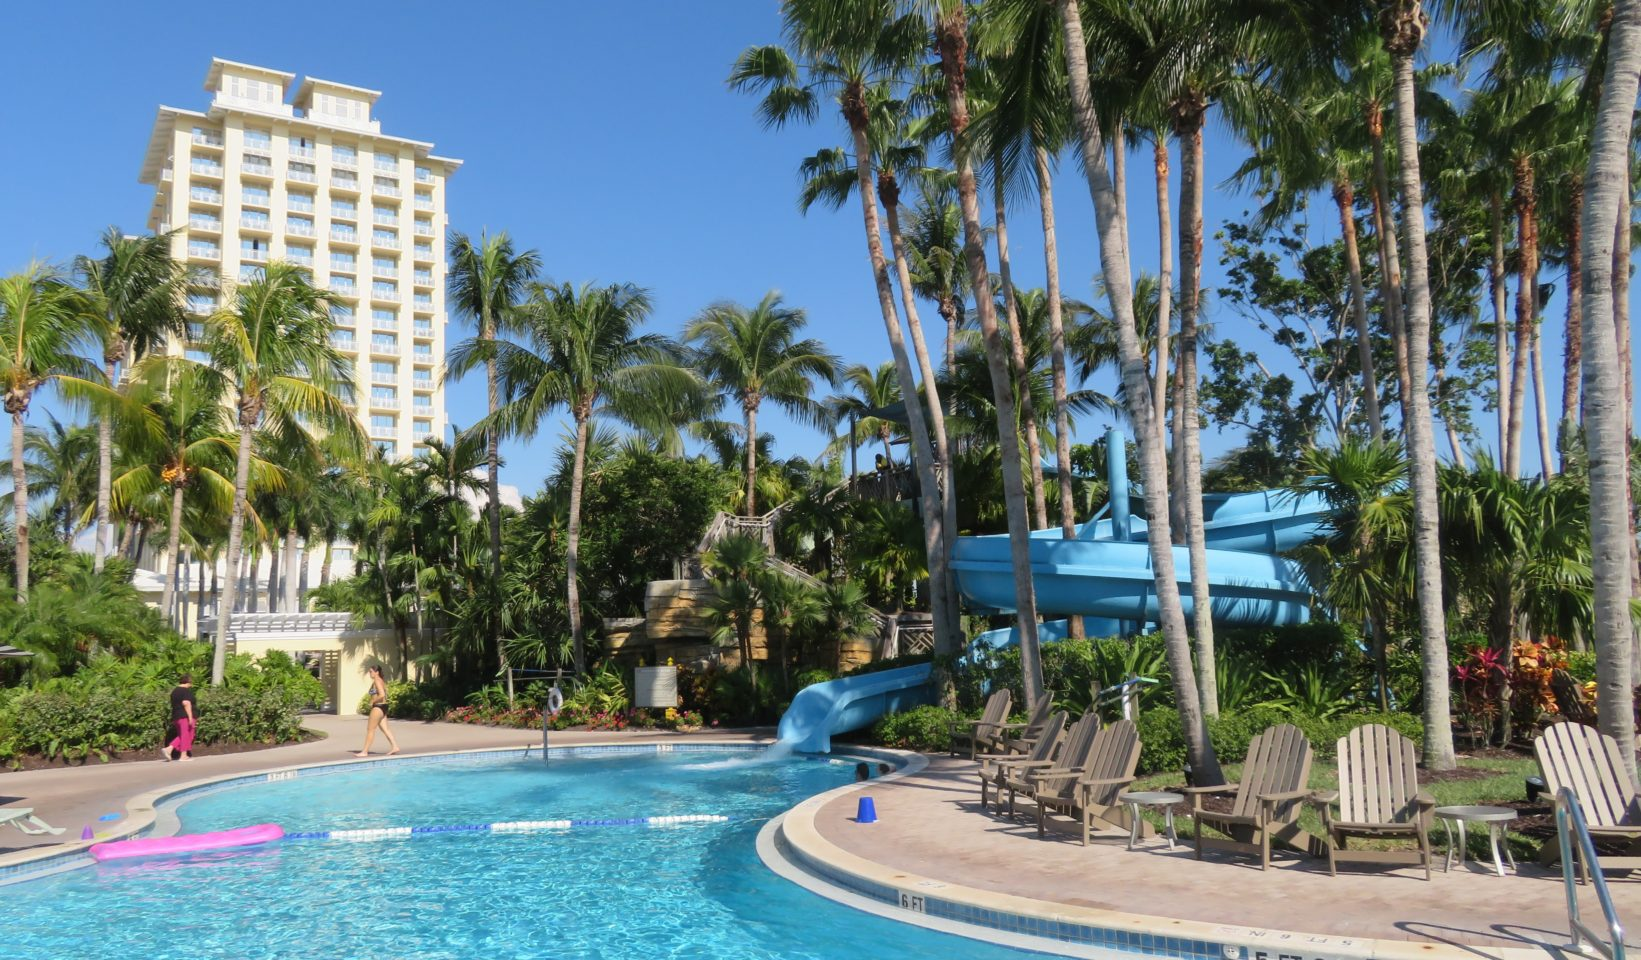 Five water slides and the largest poolscape in south Florida ~ Gem of a Florida Resort